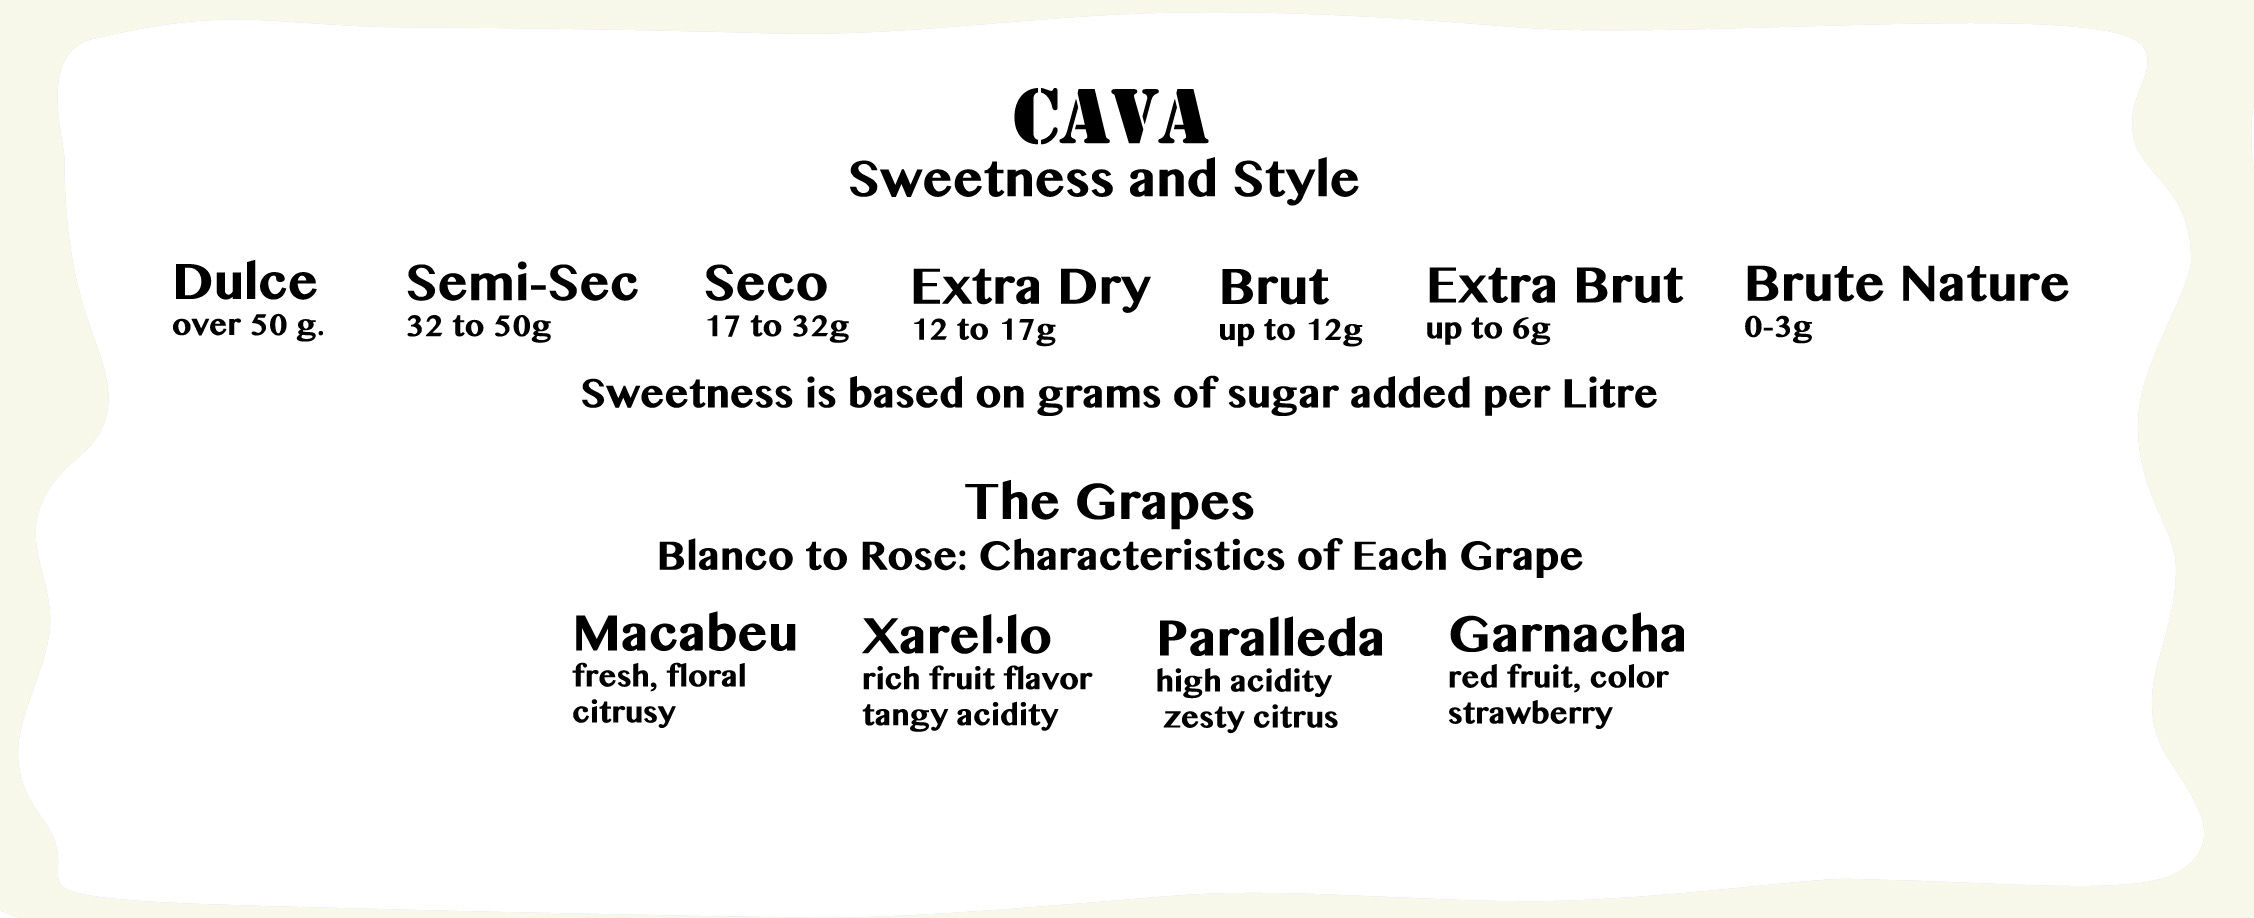 Cava Cheat Sheet